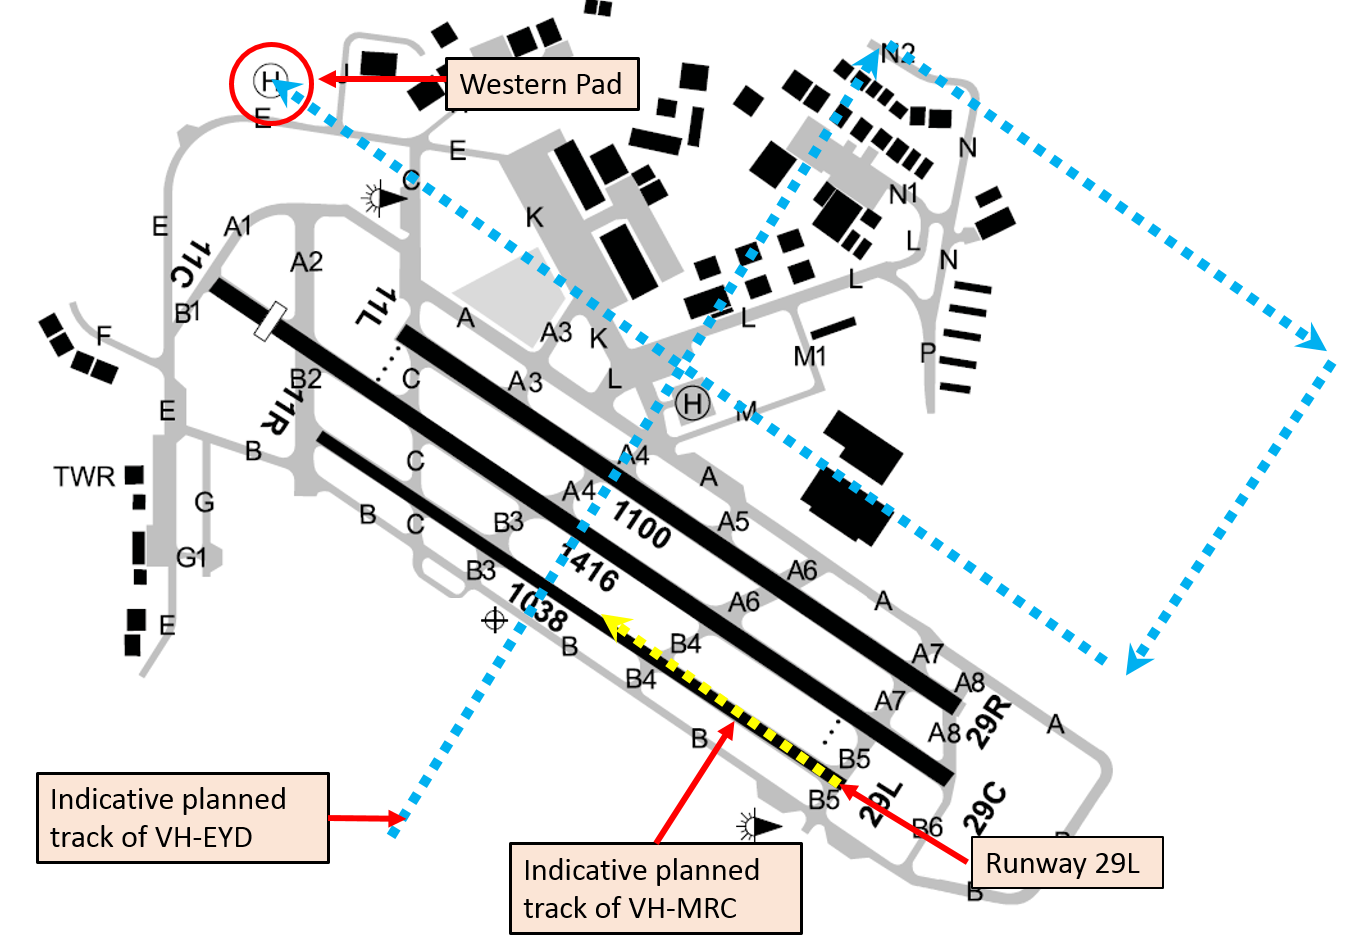 Figure 2: Indicative aircraft tracks